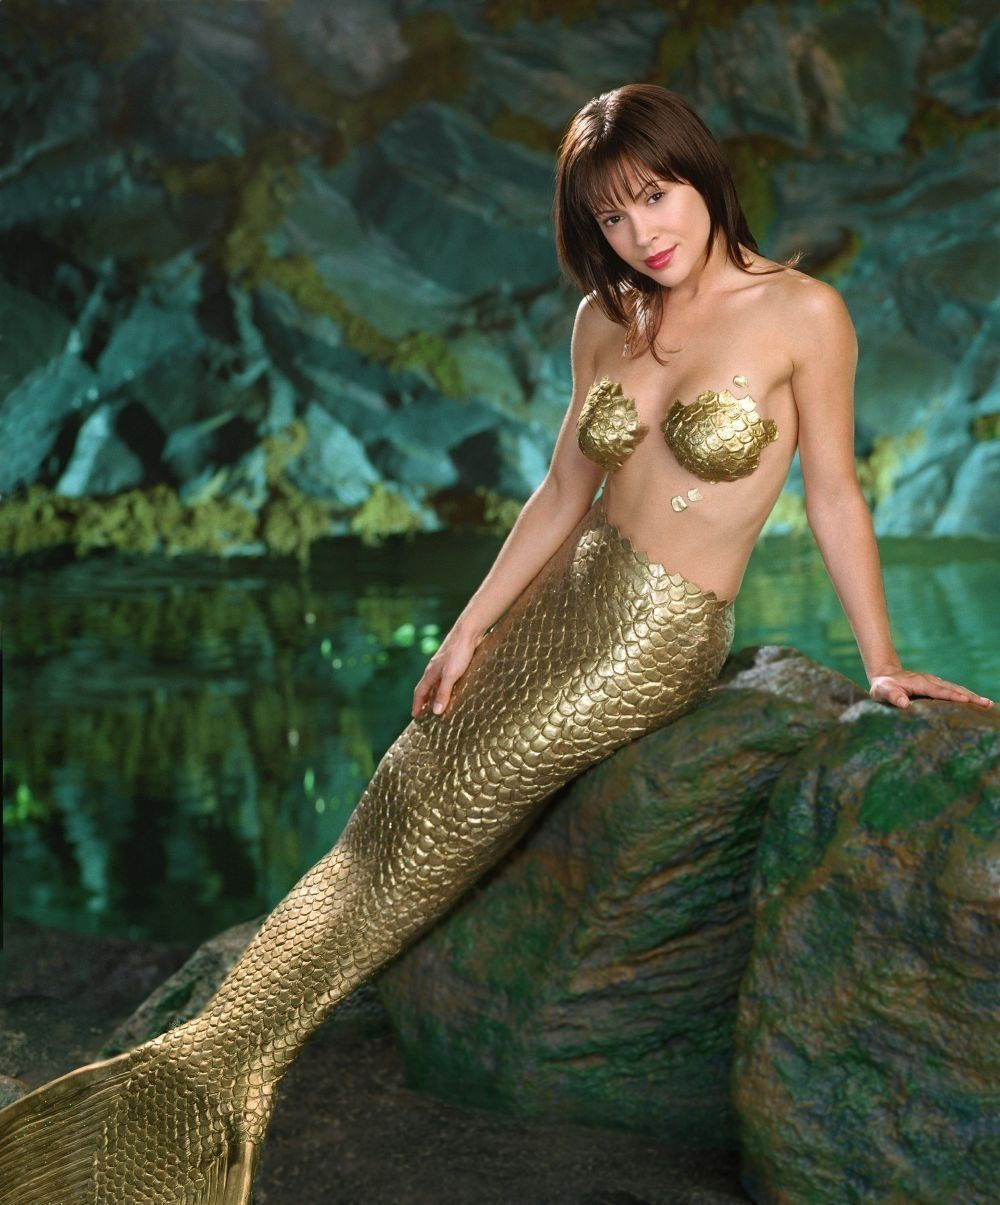 The little mermaid costume naked images 136